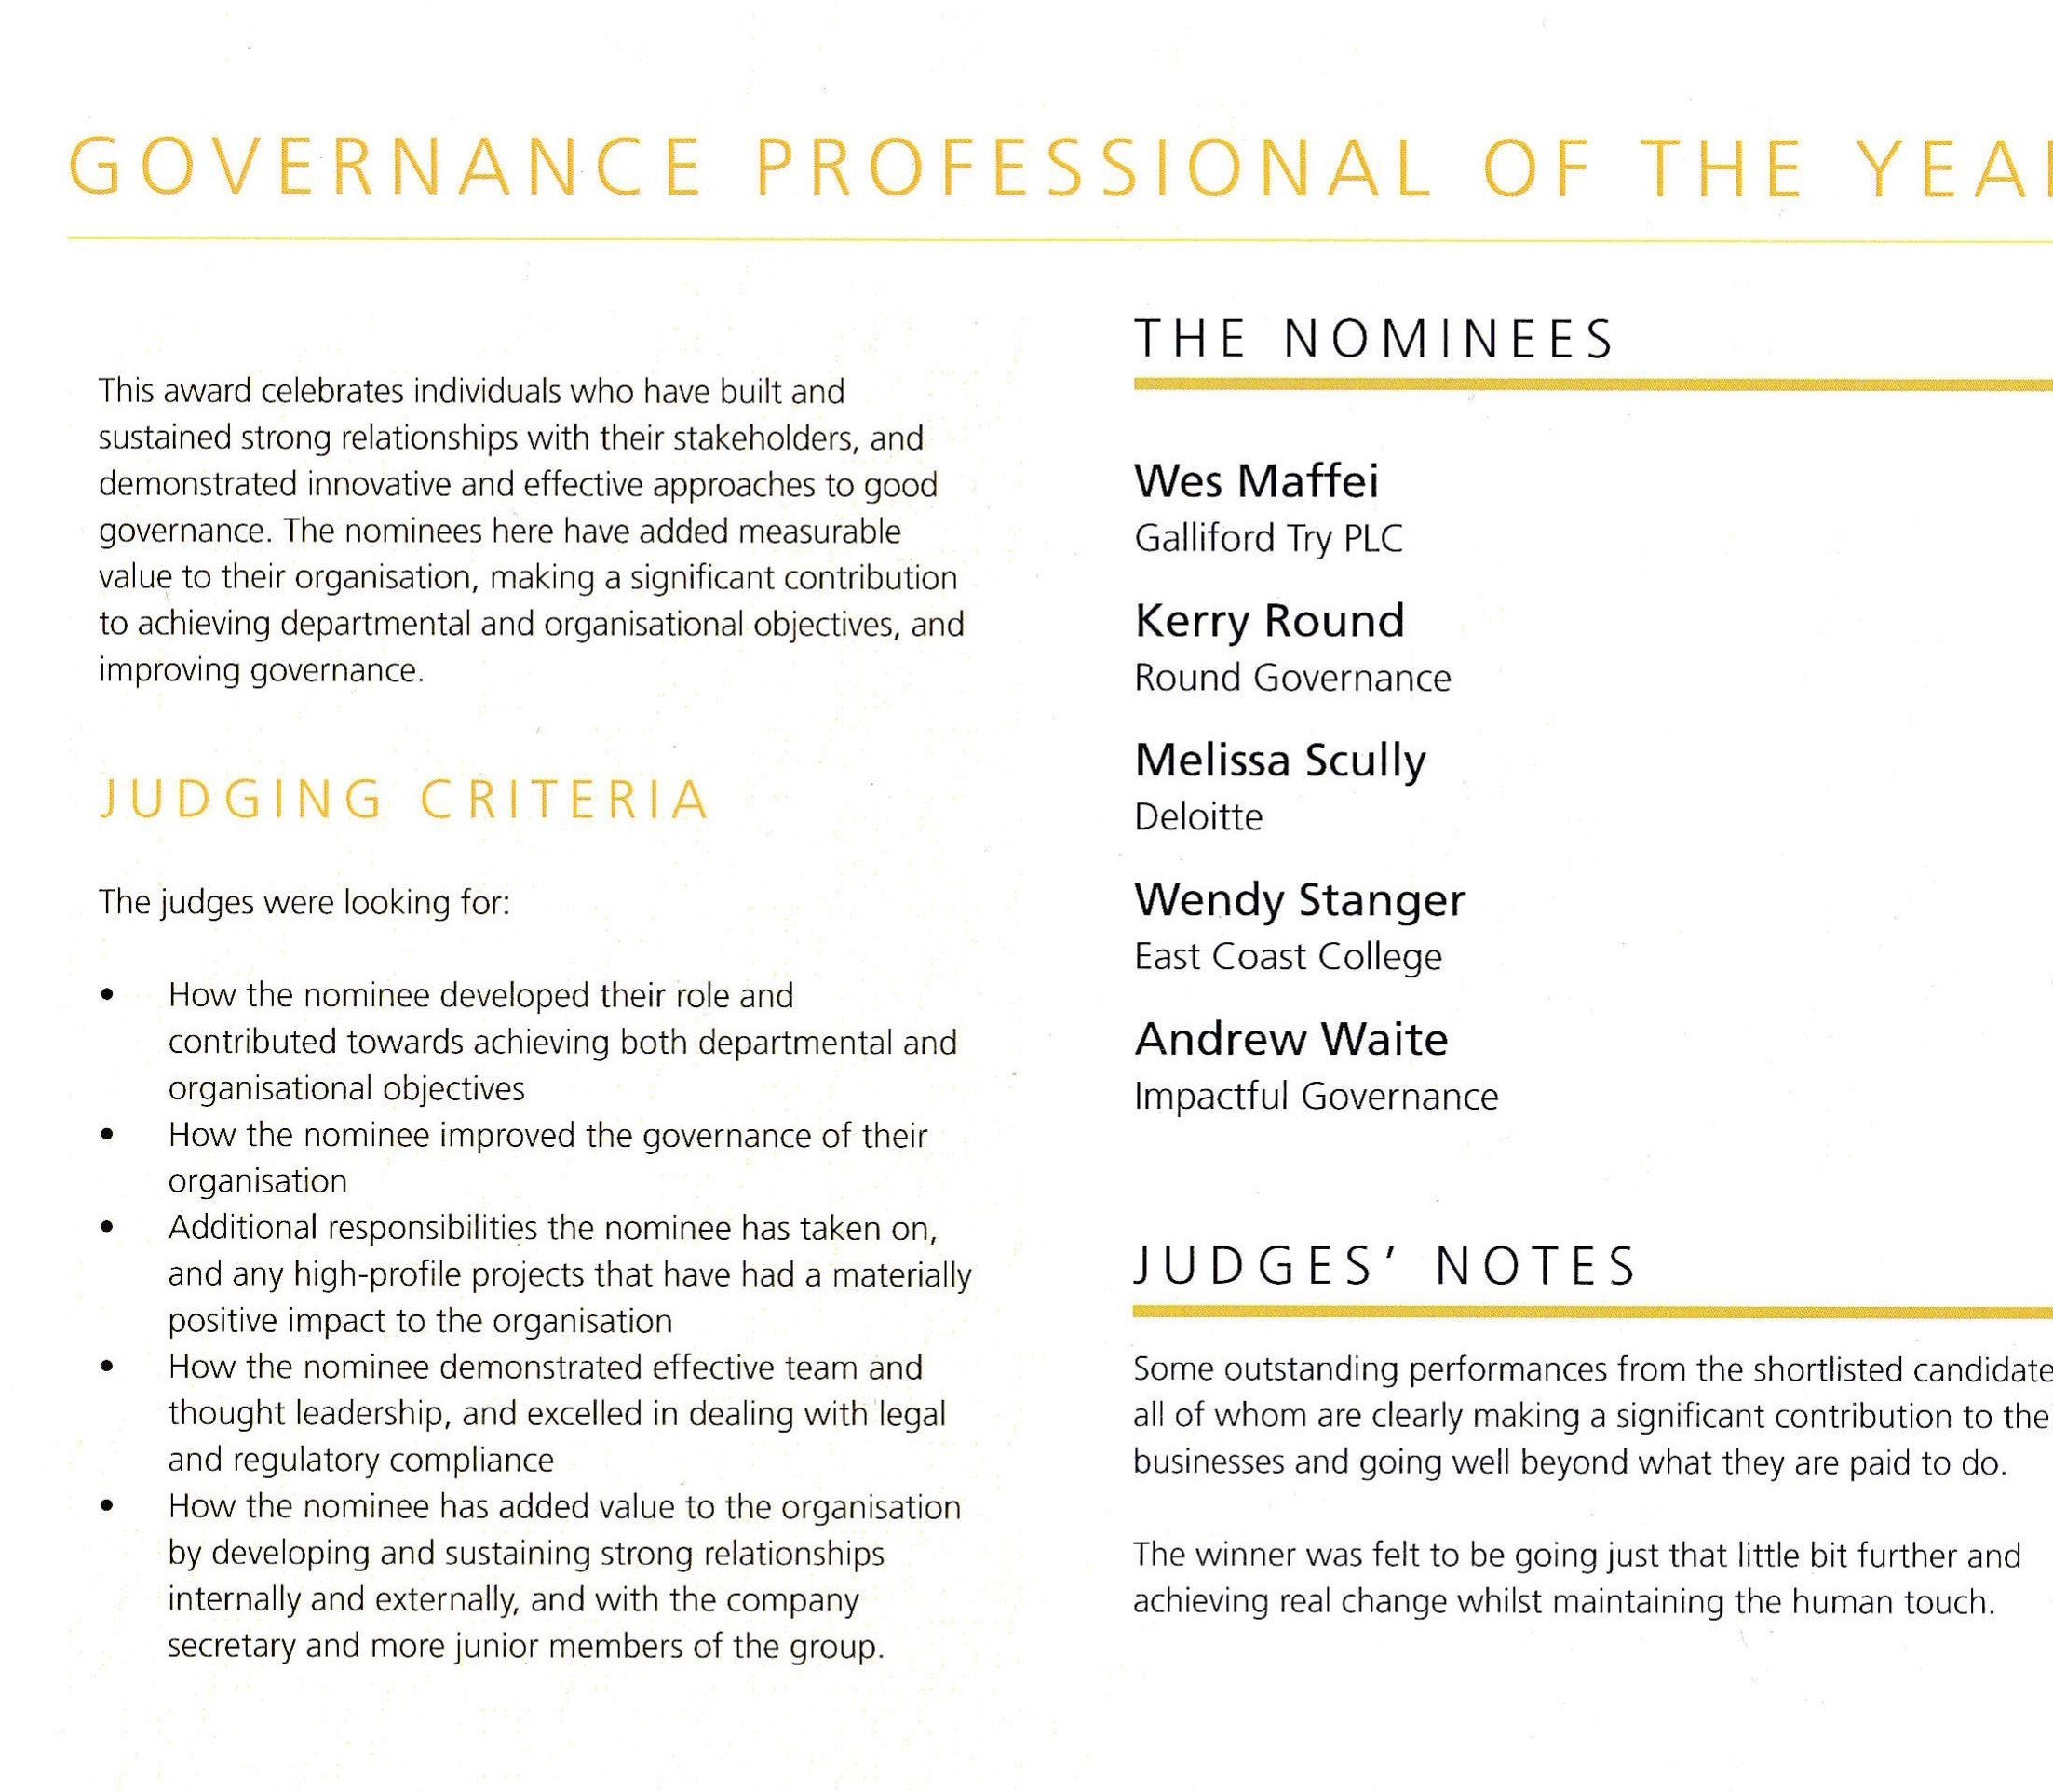 Professional of the Year 2019 - Page 1